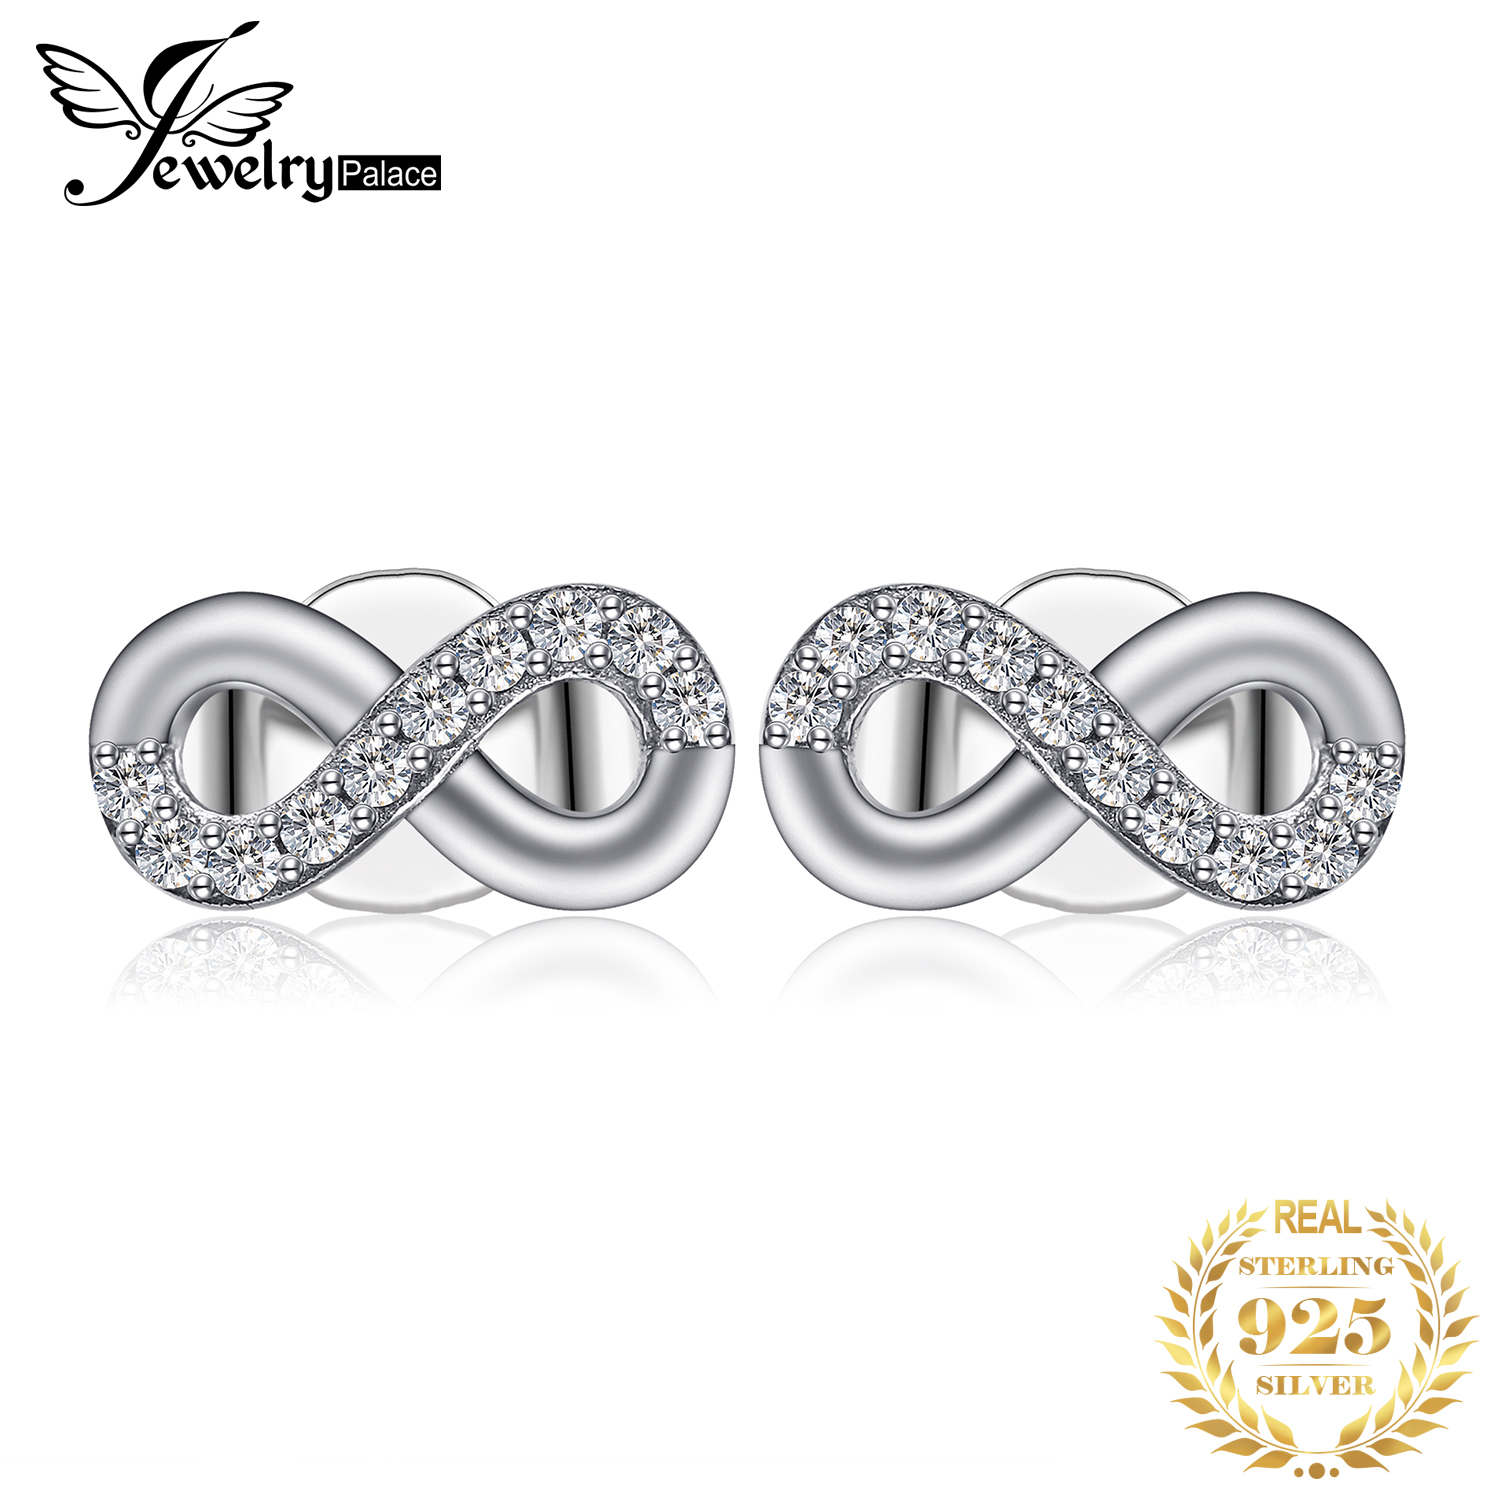 Jewelrypalace 925 Sterling Silver Earrings Stud Earrings Infinity Love Cubic Zirconia Bridal Jewelry Anniversary Gifts for Her in Earrings from Jewelry Accessories